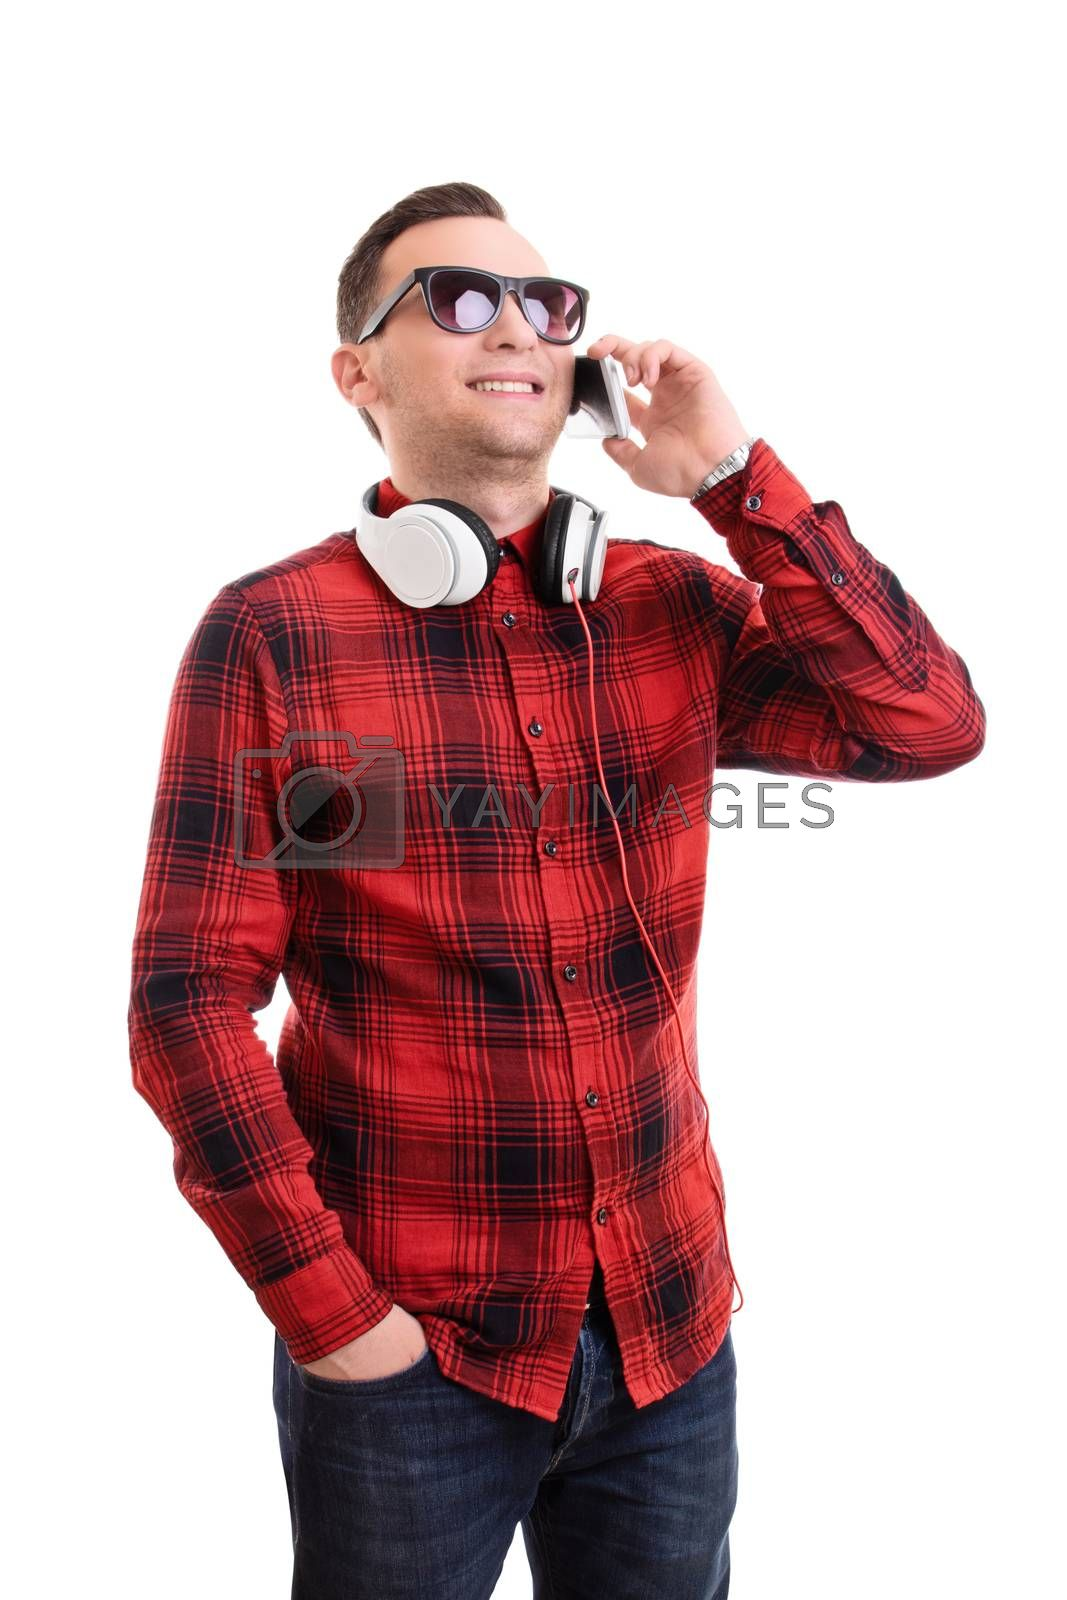 Communication and technology concept. Portrait of a handsome smiling young man in plaid shirt talking on his mobile phone and wearing headphones around his neck, isolated on a white background.